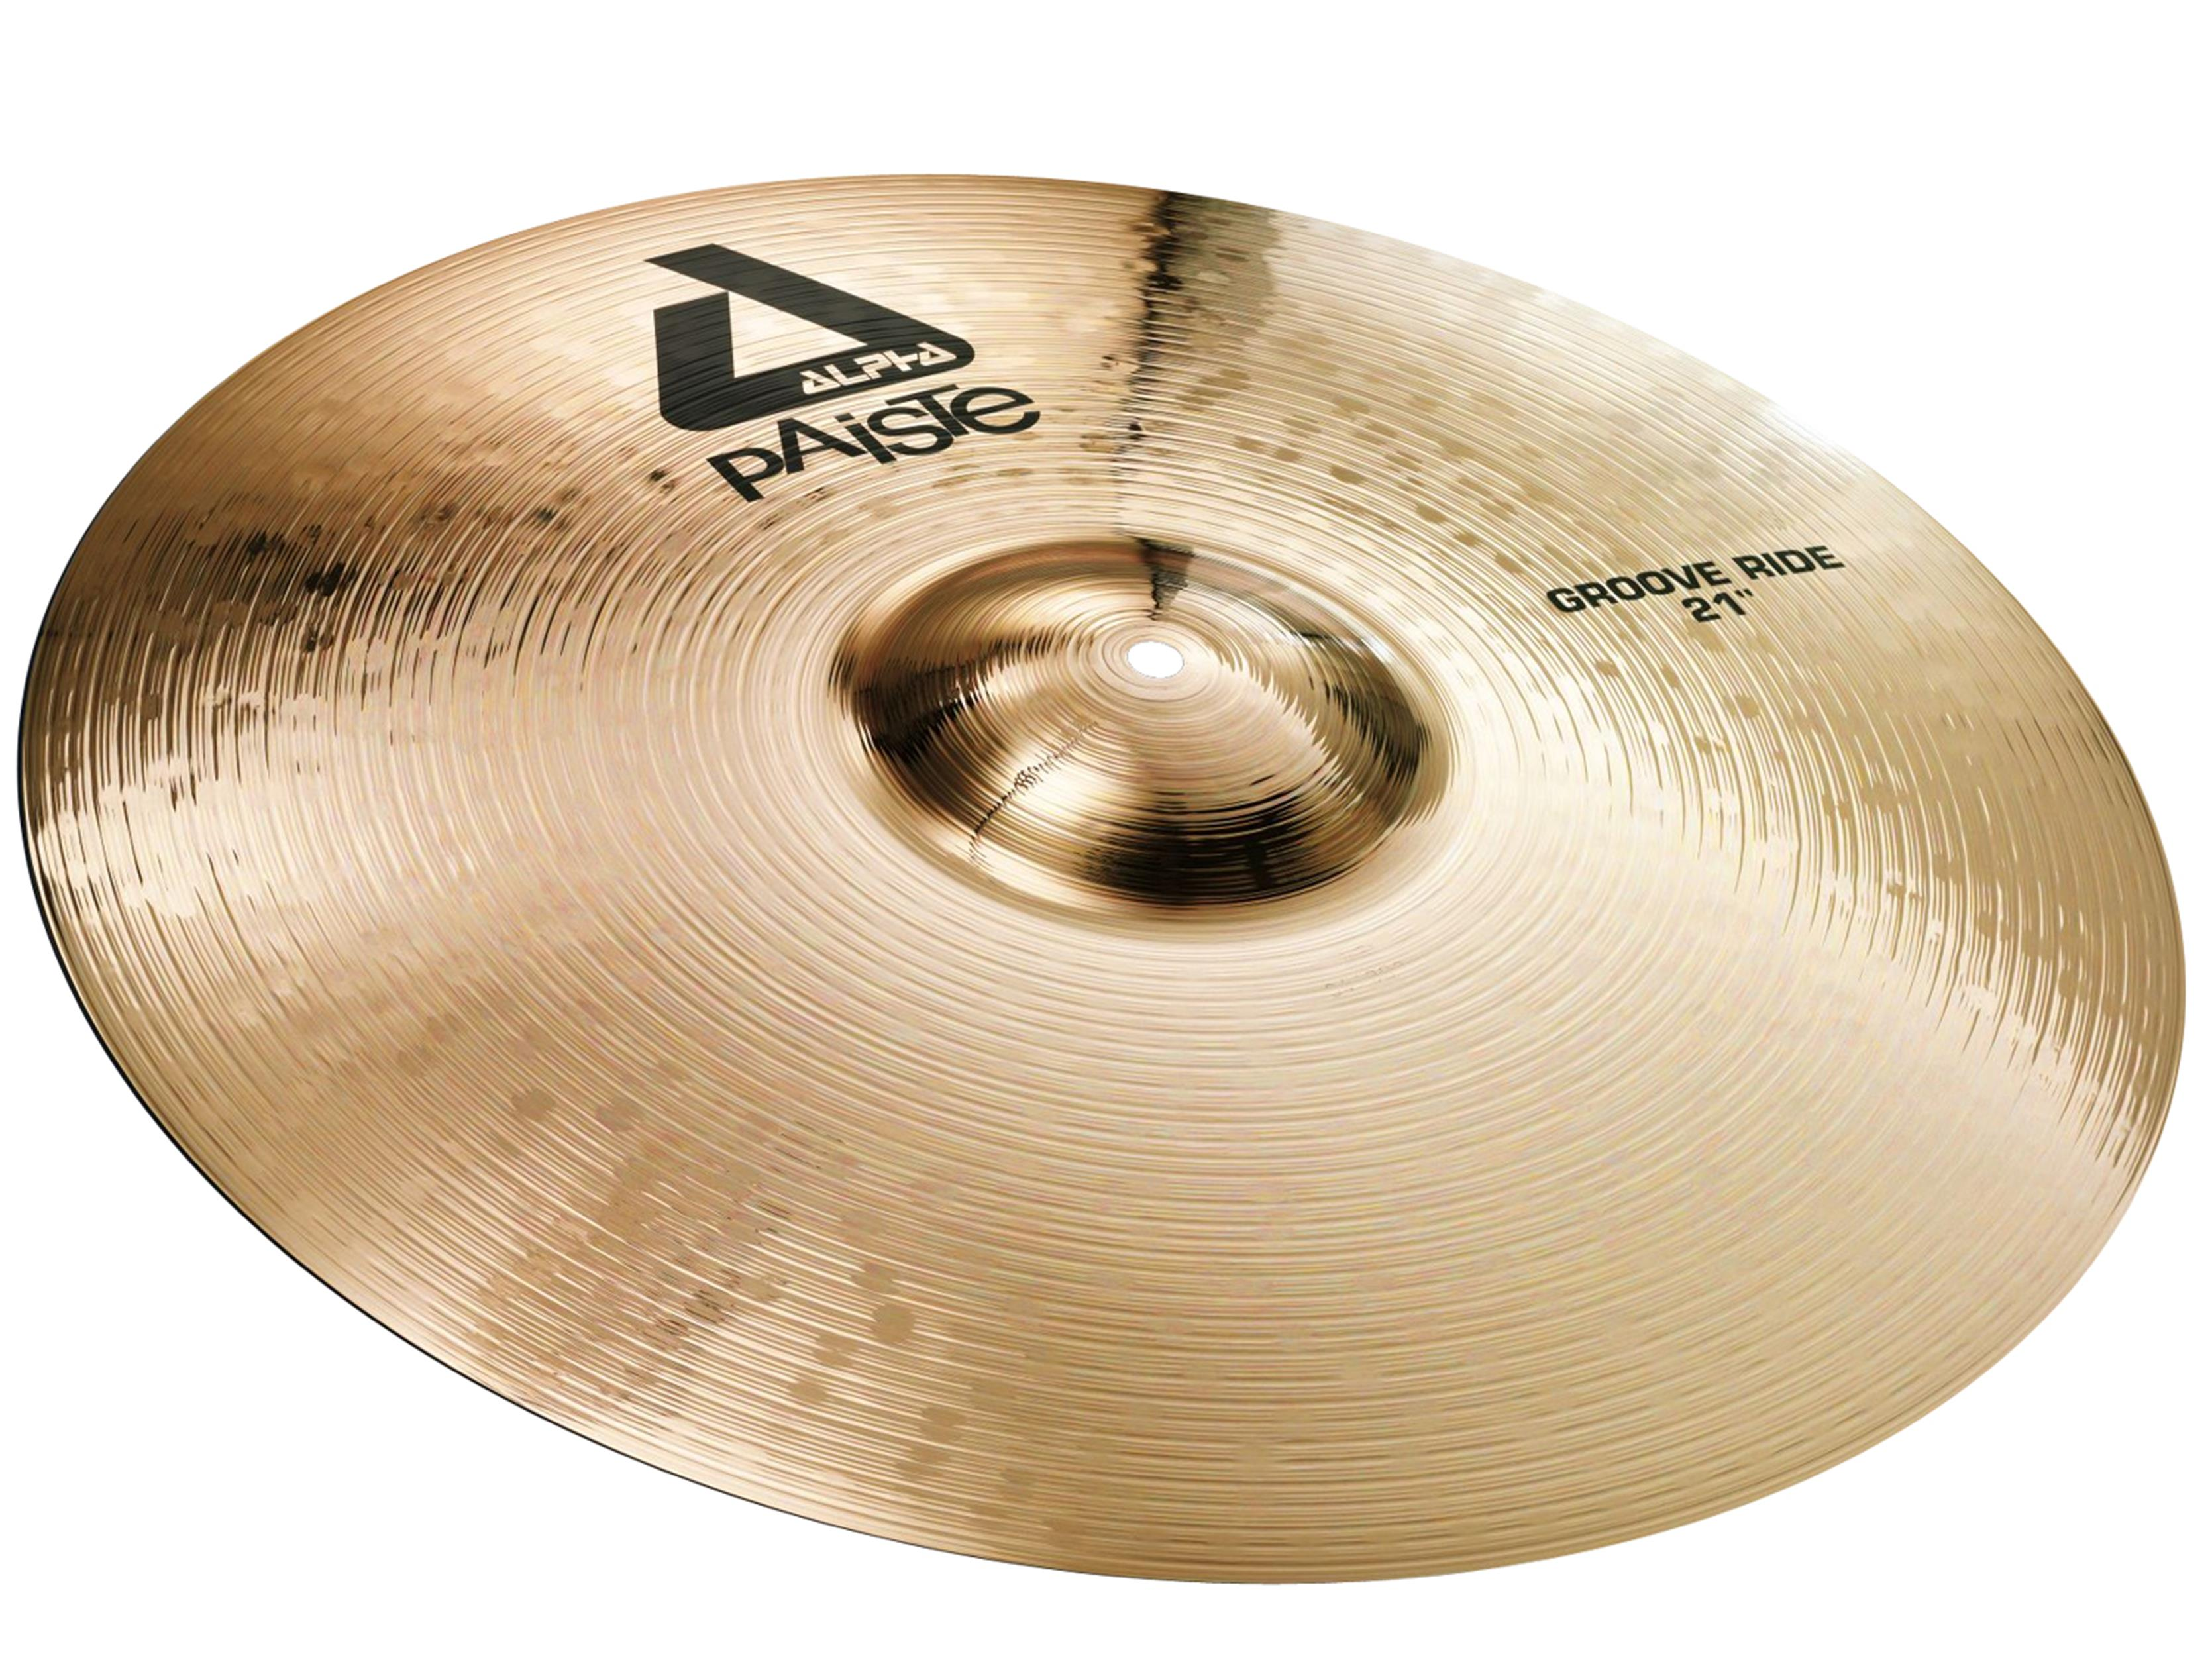 PAISTE-ALPHA-GROOVE-RIDE-22-sku-185